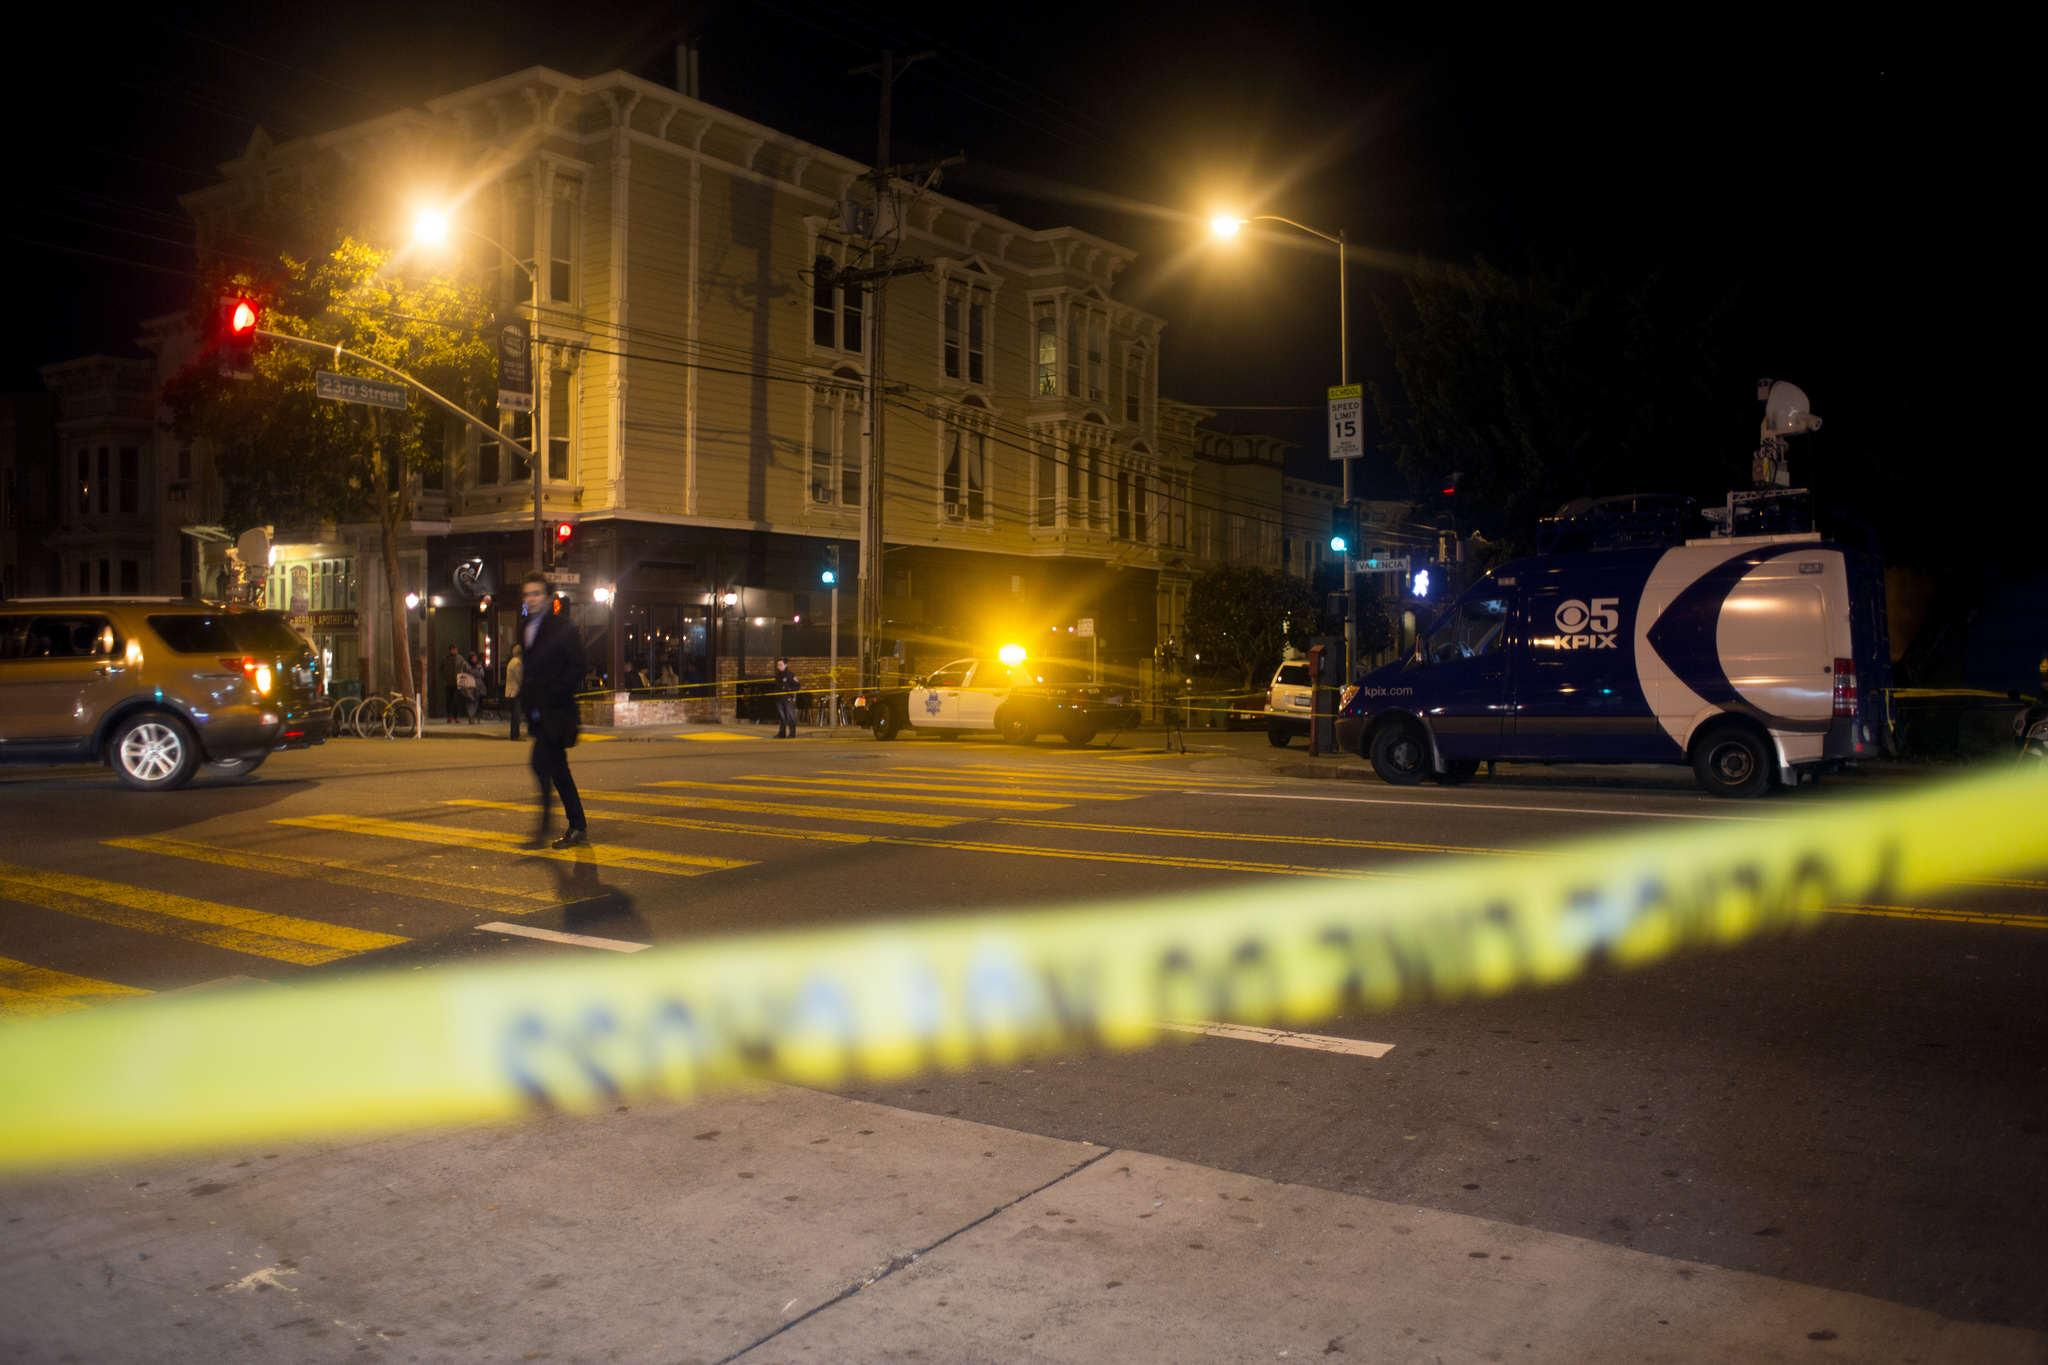 Police respond to a bomb threat on Bartlett Street between 22nd and 23rd streets in the Mission District on Friday February 27, 2015. People were told to remain situated and residents in the surrounding area evacuated their homes. Police cleared the scene at about 10:45pm. (Emma Chiang / Xpress)